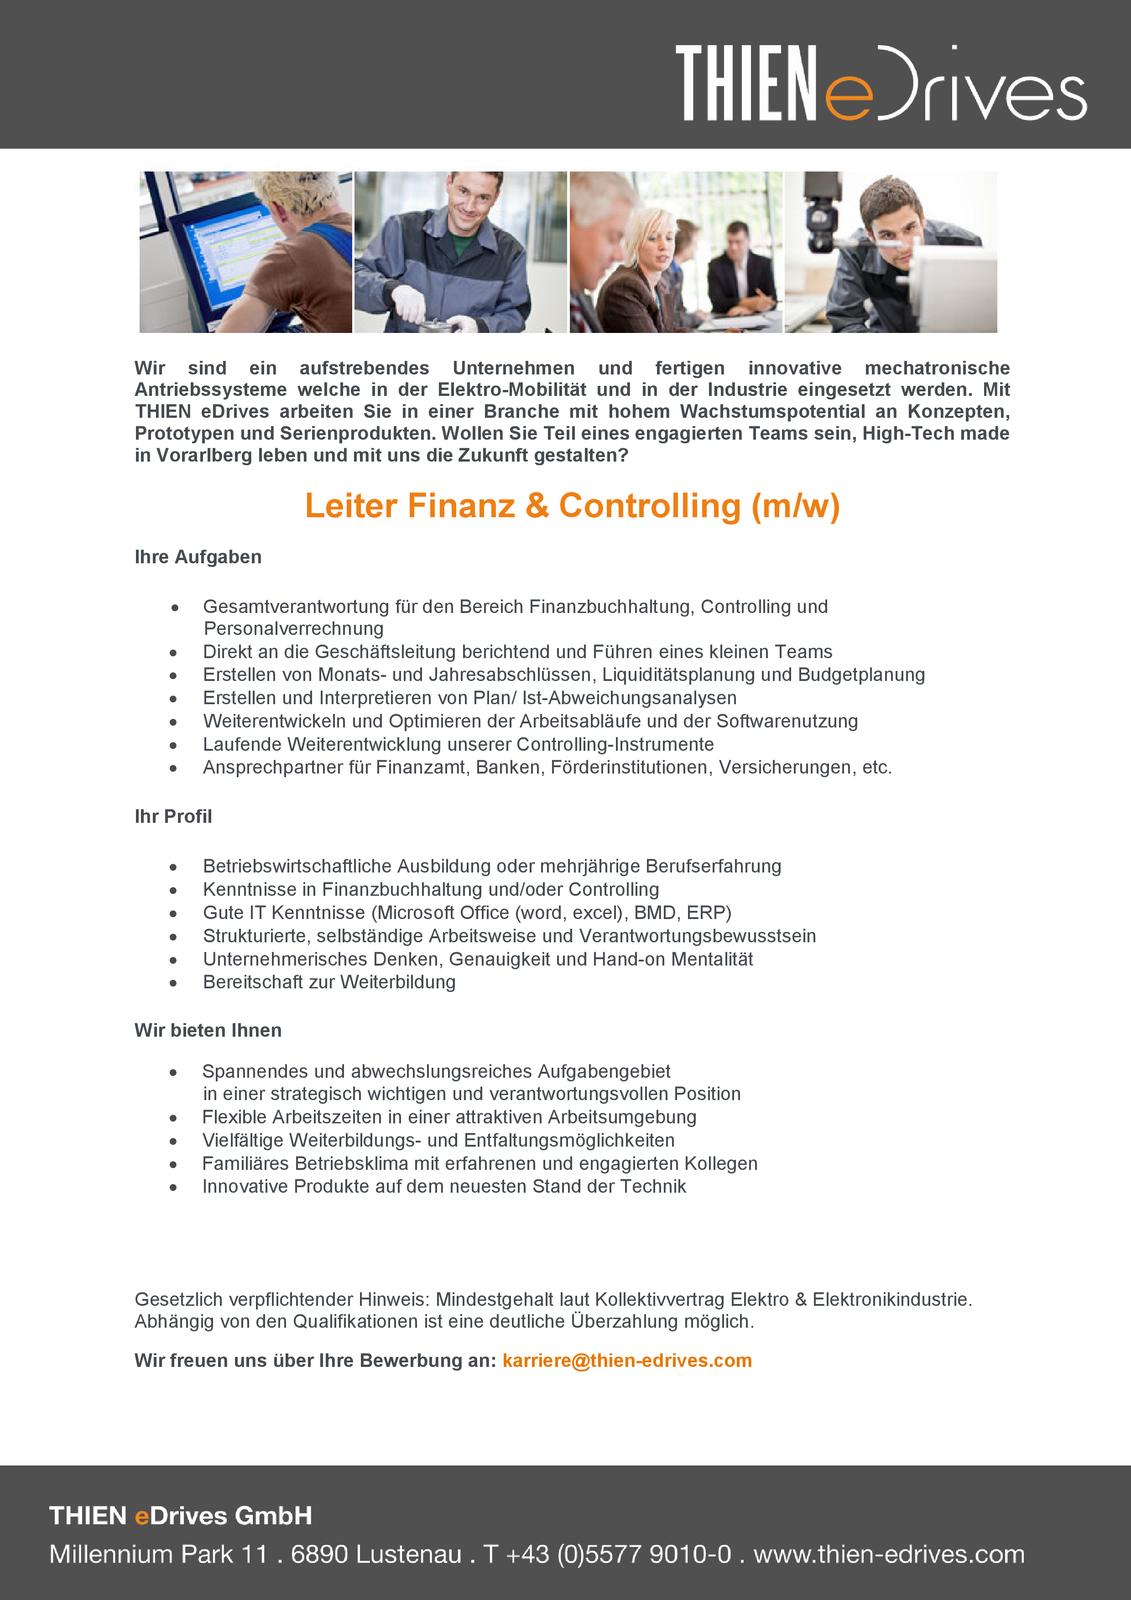 Leiter Finanz & Controlling